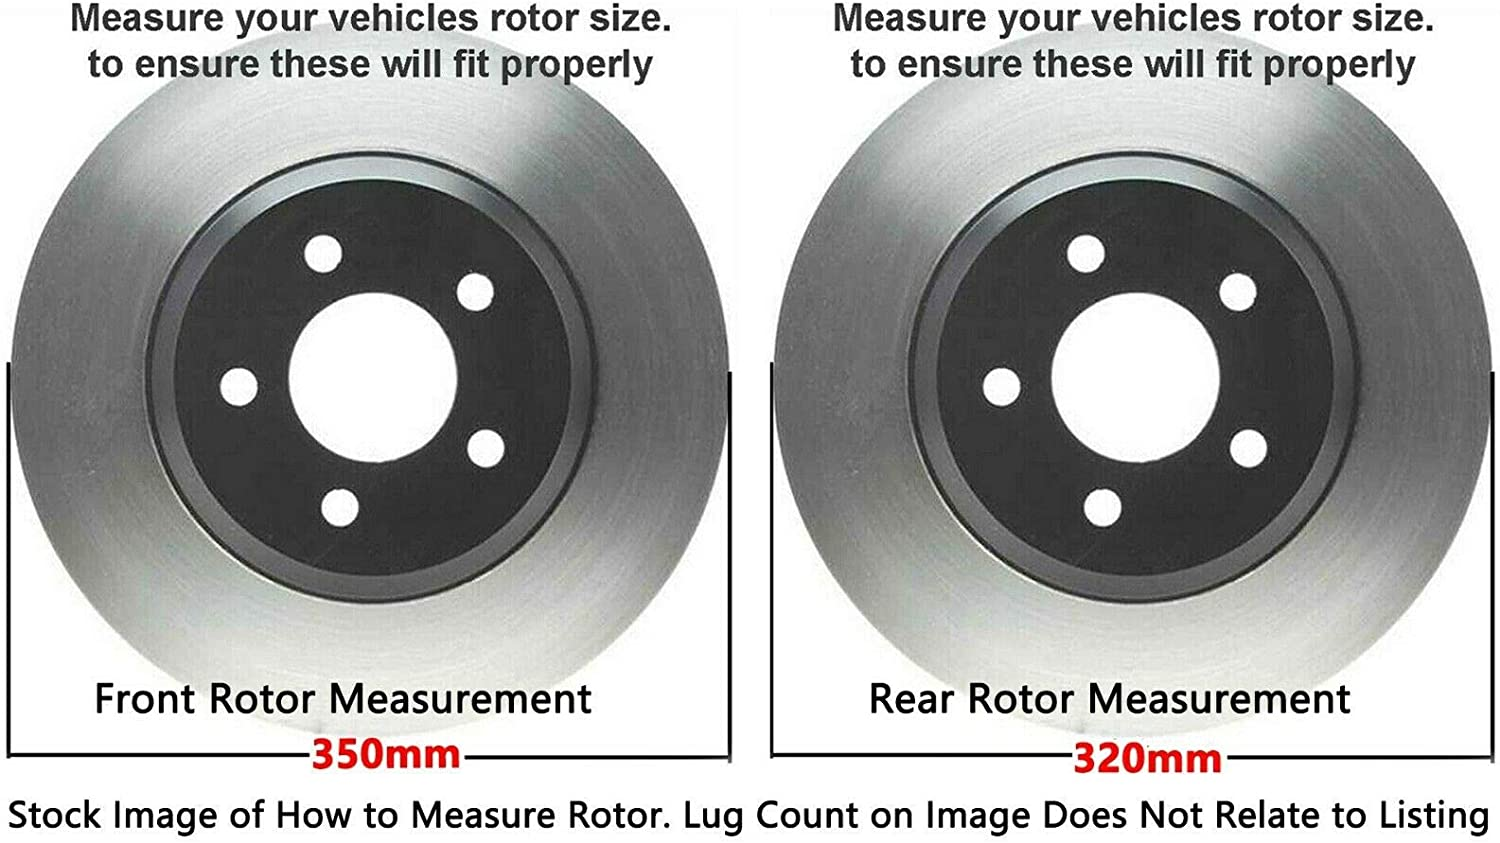 All 2011-2015 Nissan Titan 4 Front and Rear Drilled and Slotted Brake Kit Rotors w//Ceramic Pads w//Hardware /& Brake Kit Cleaner /& Fluid for 2012 2013 2014 2015 Nissan Armada - Detroit Axle